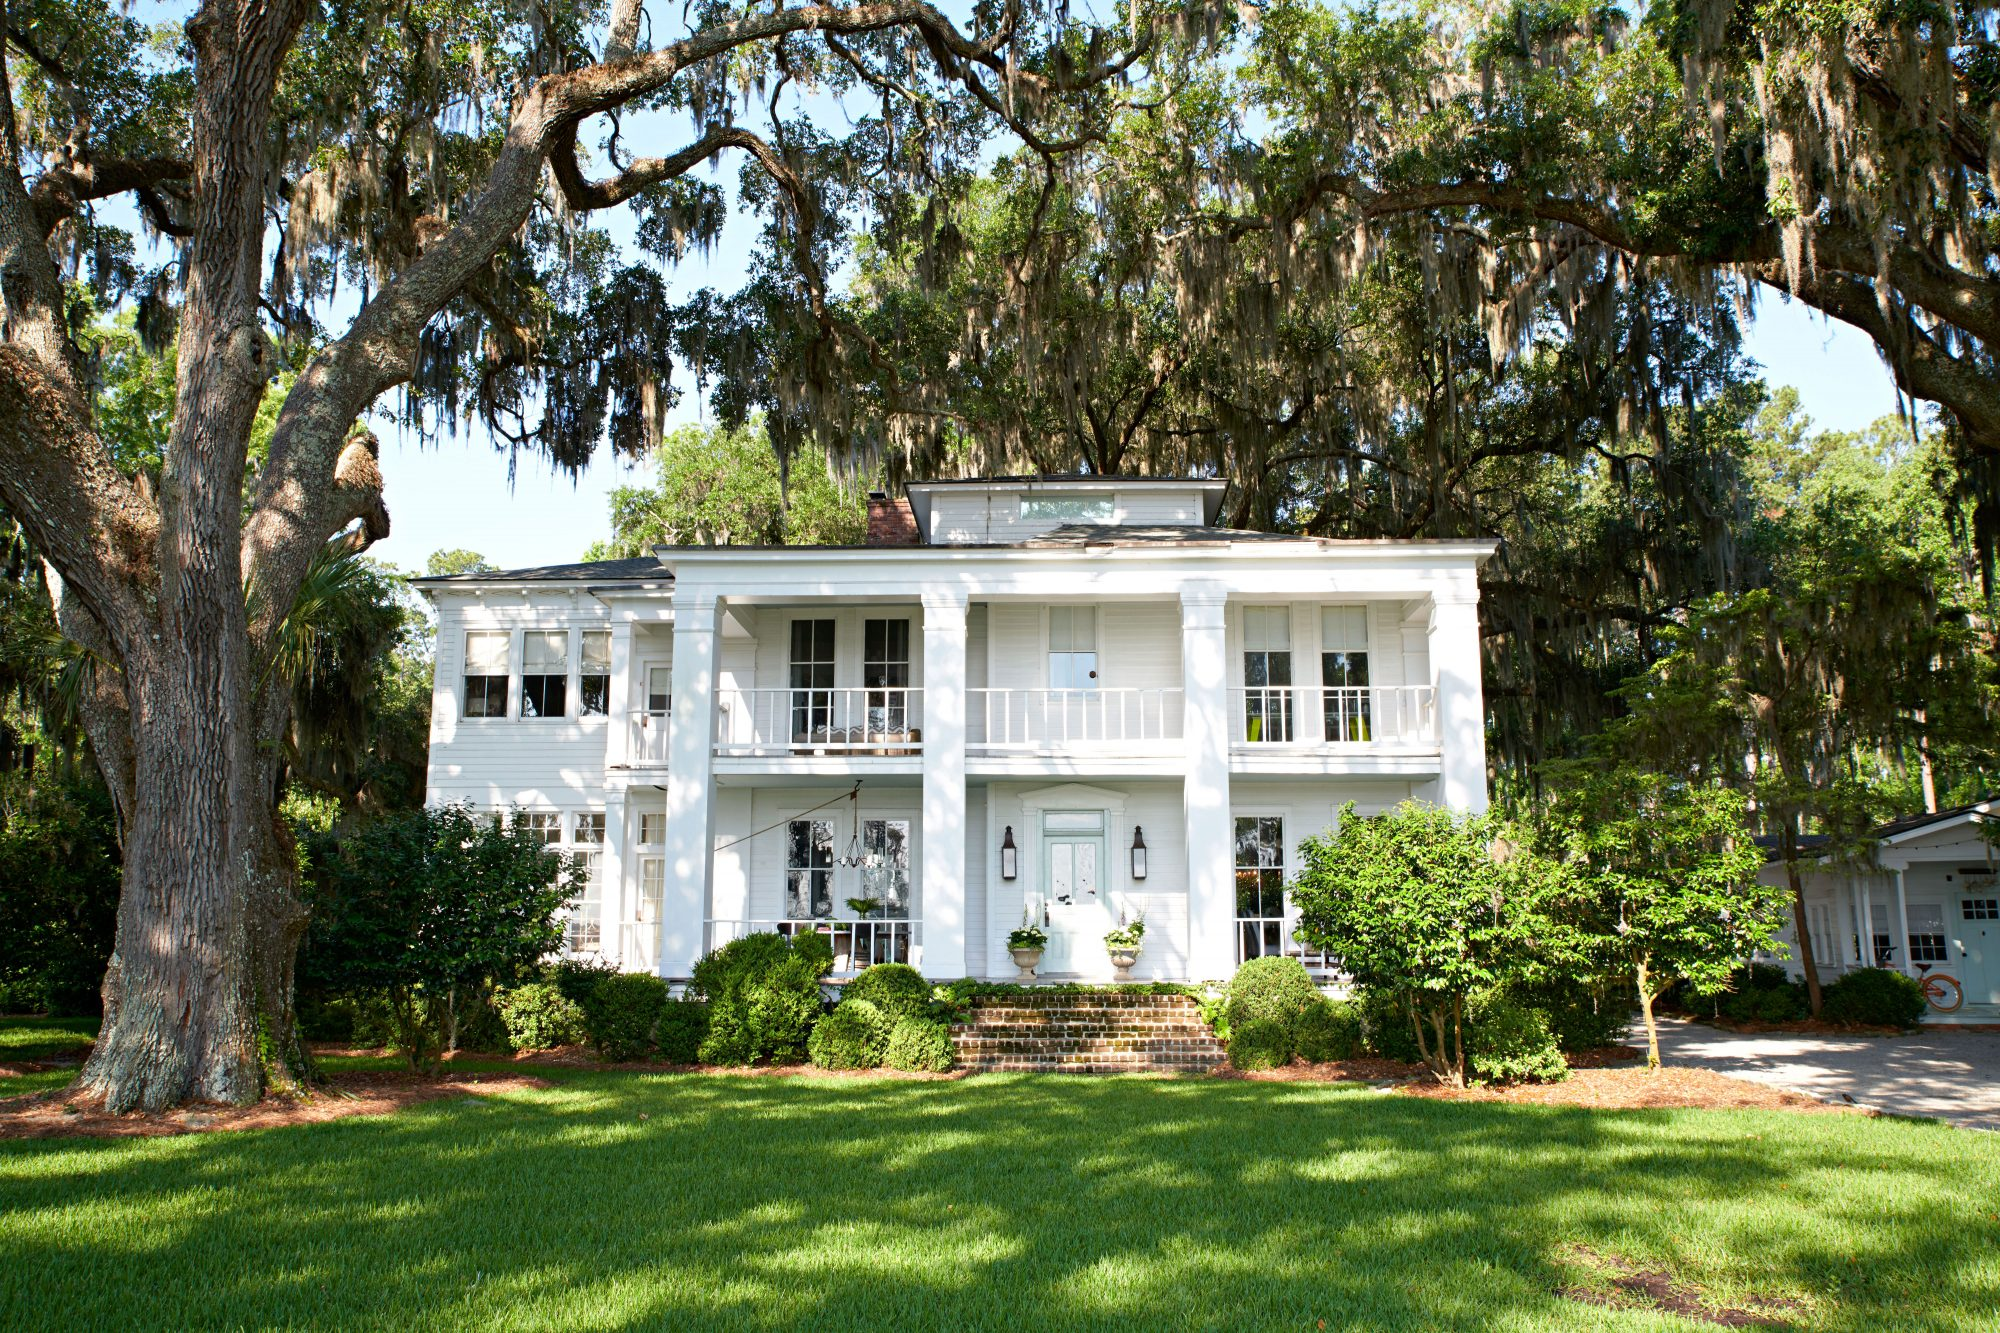 Two Story, White Federal-Style House Under Live Oak Trees